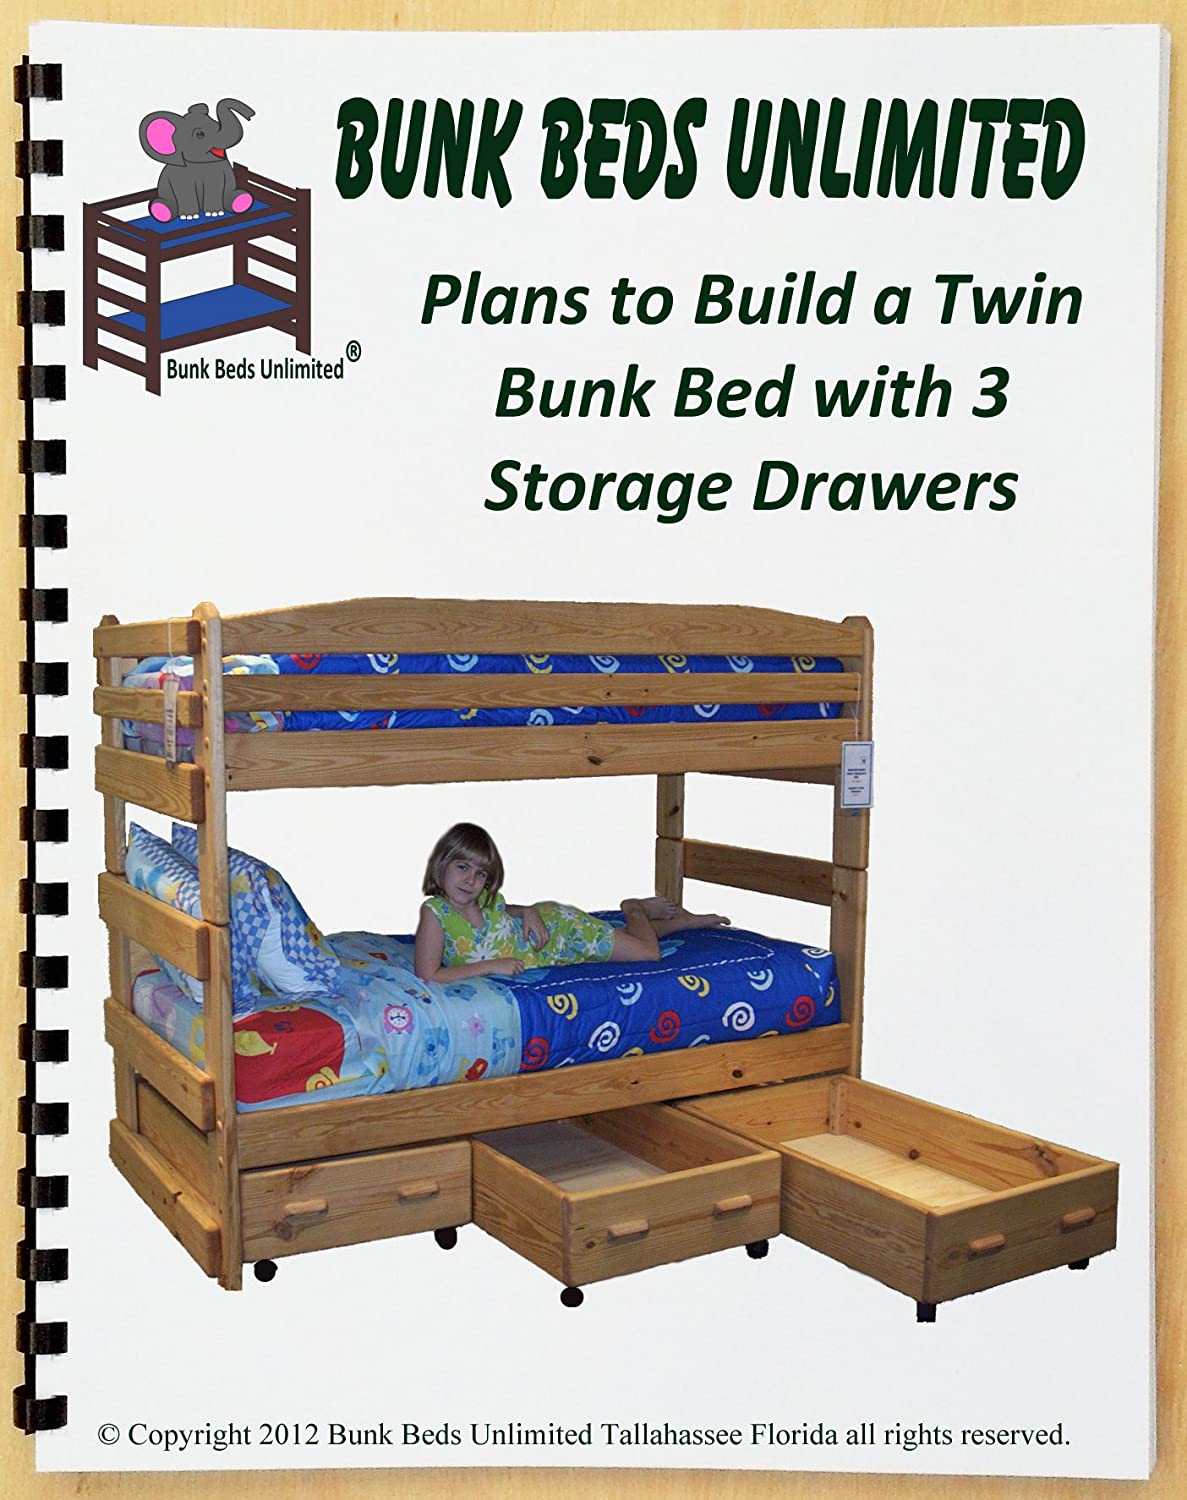 Bunk Bed DIY Woodworking Plan Long-awaited to Columbus Mall O Your Build Own Stackable Twin